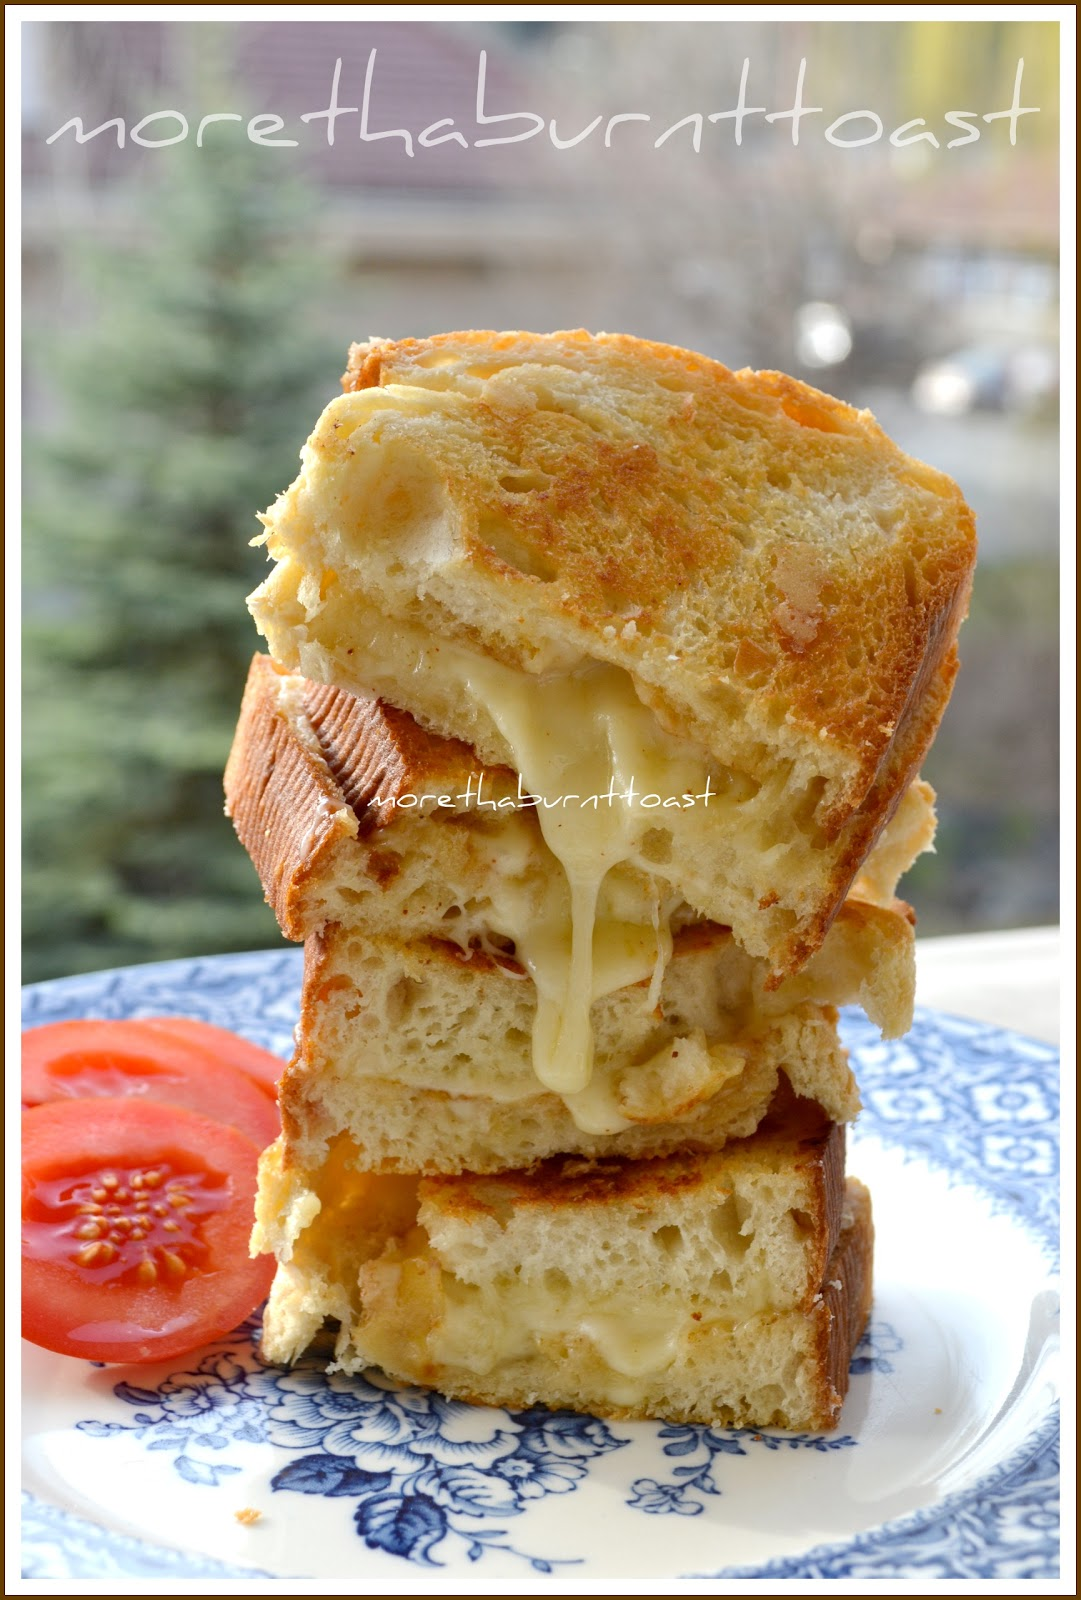 ... than burnt toast: The Secret to an Ultimate Grilled Cheese Sandwich